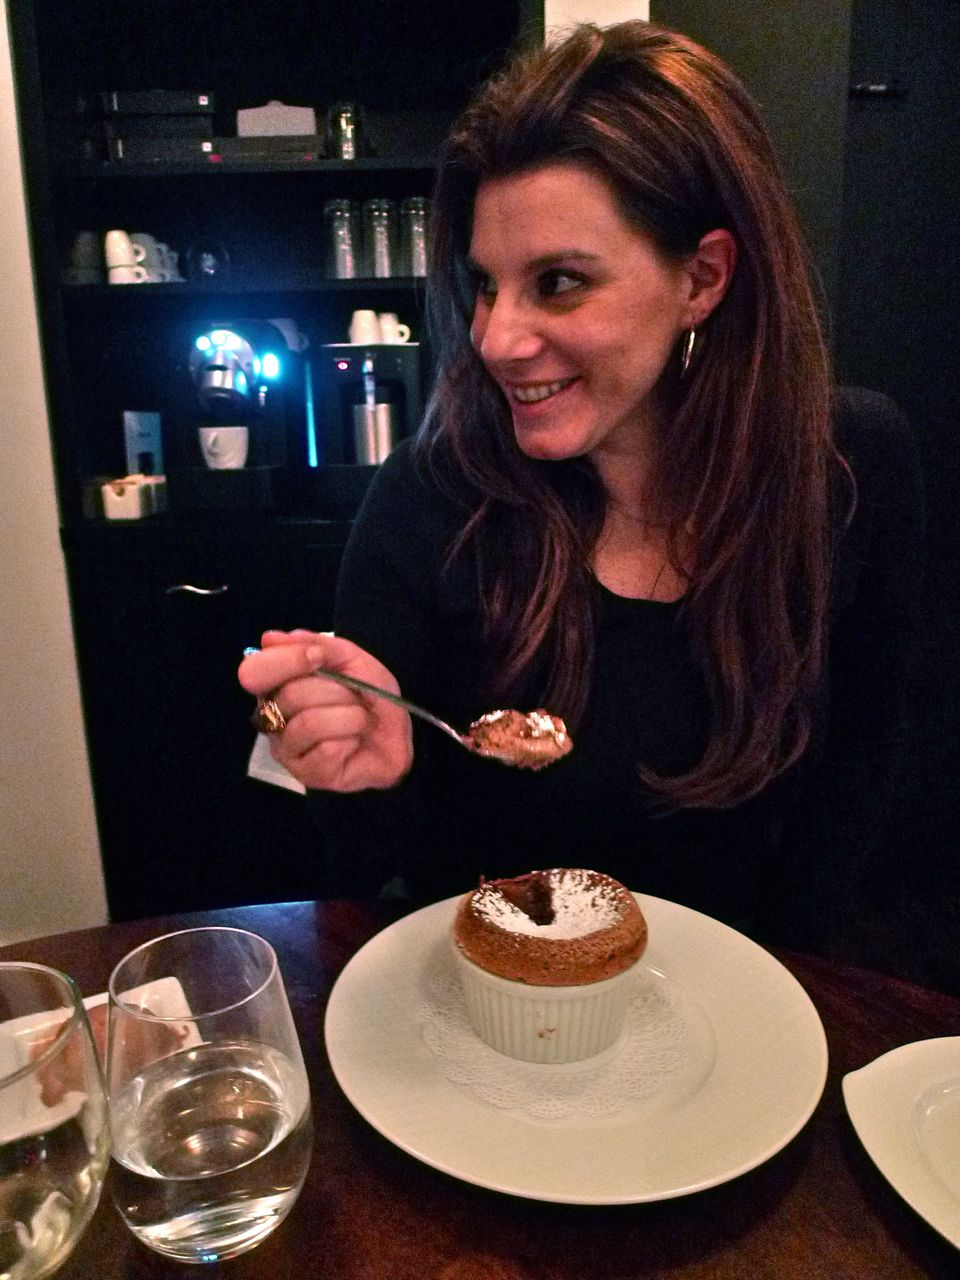 Chef Godard's soufflés come on the prix fixe. Chana loves chocolate. Photo: Steven Richter